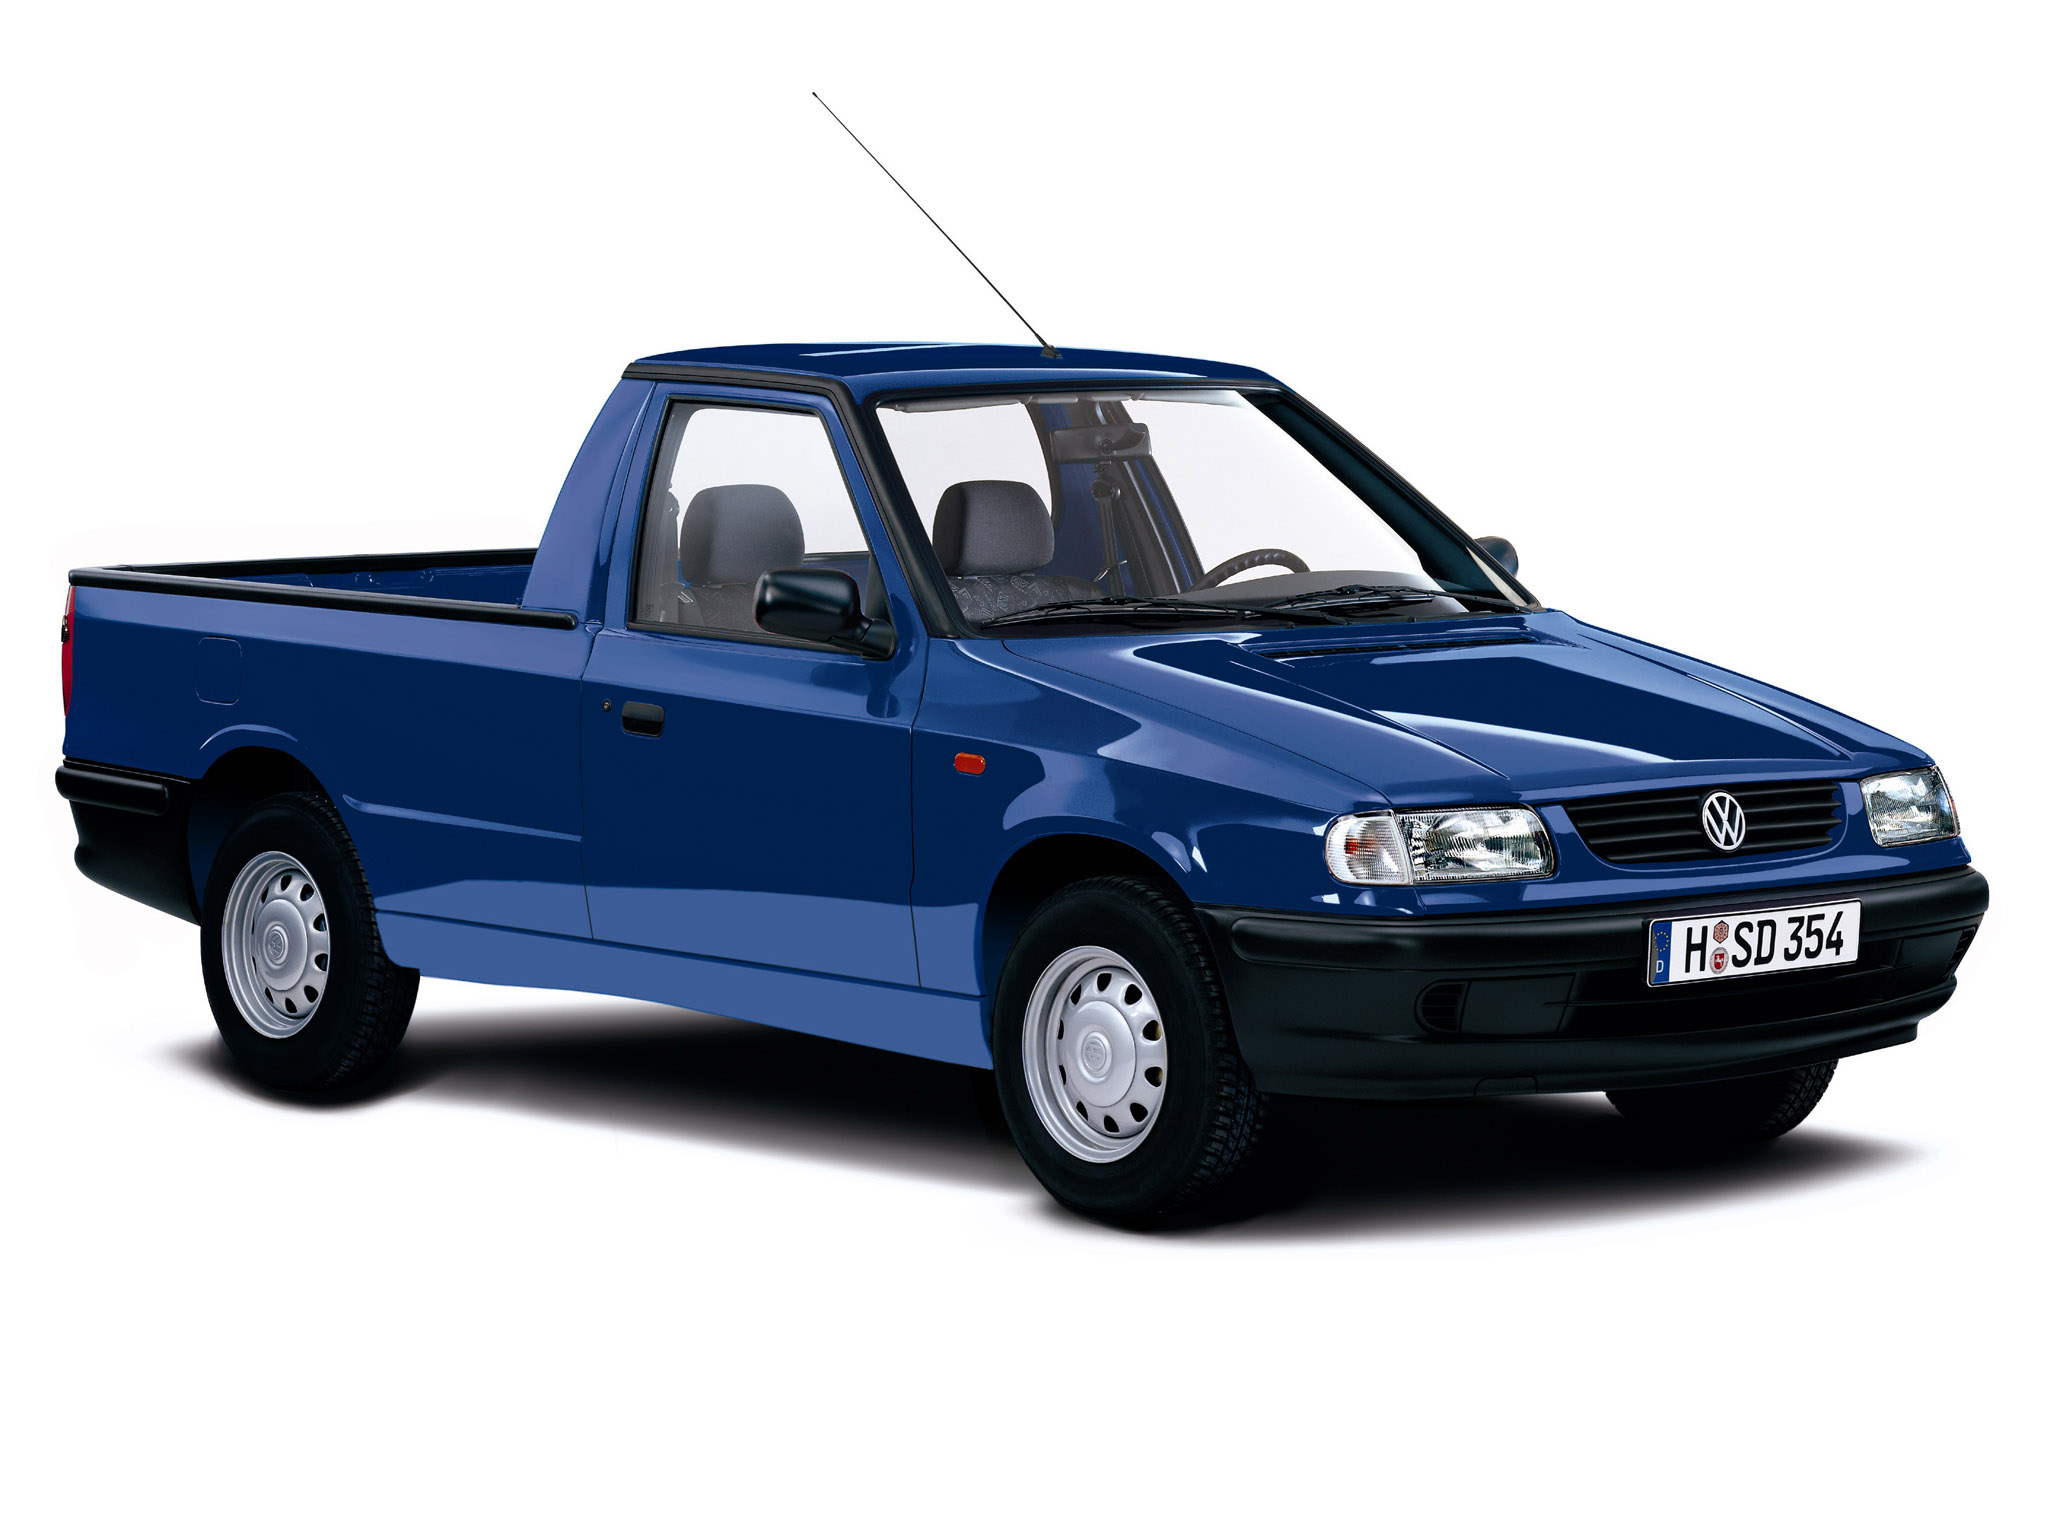 1996 Volkswagen Caddy